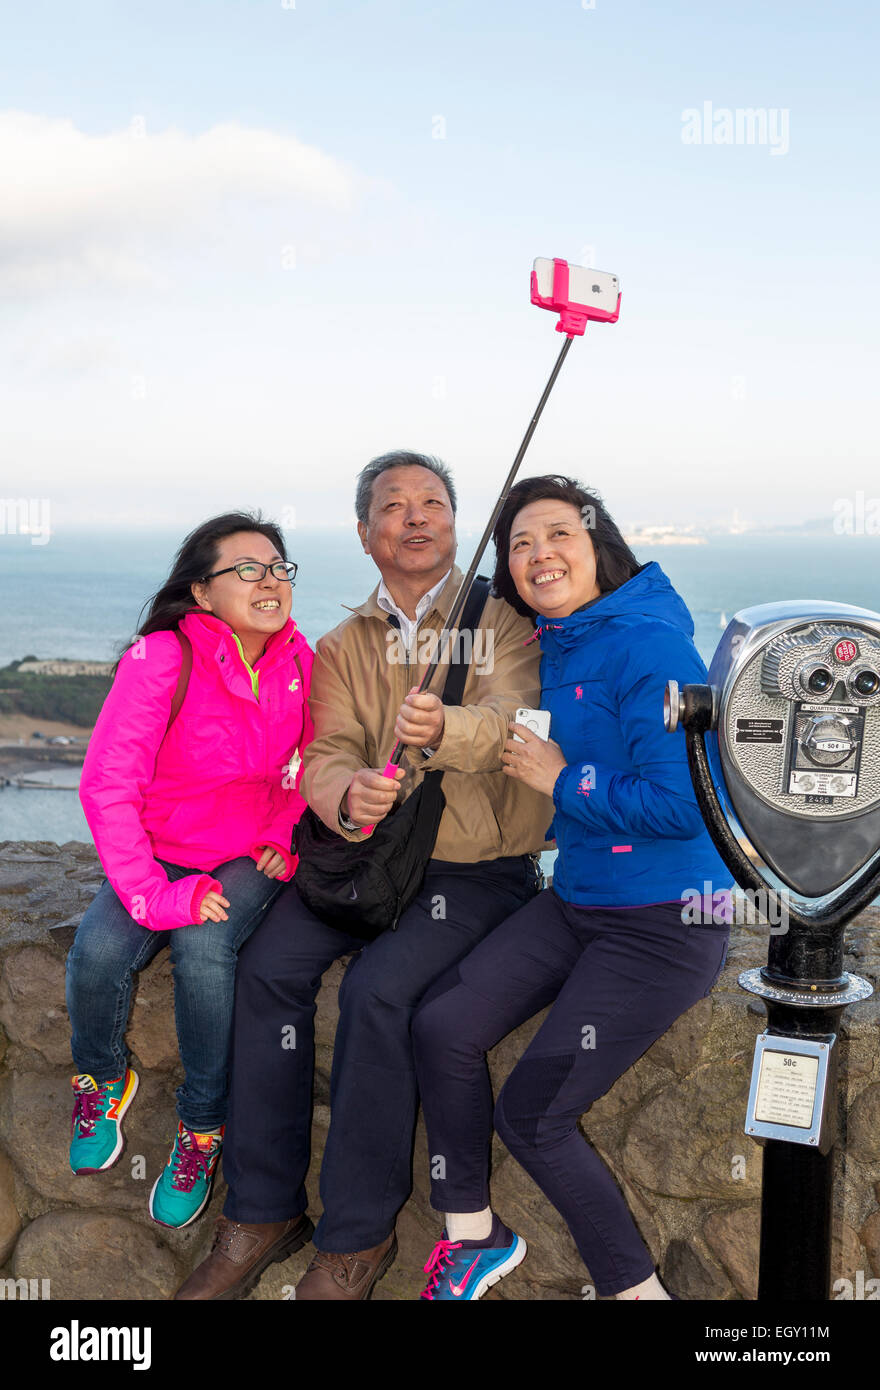 Touristen, Familie, wobei selfie selfie, Foto, selfie Stick, Handy, Vista Point, nördlich der Golden Gate Bridge, Stockbild